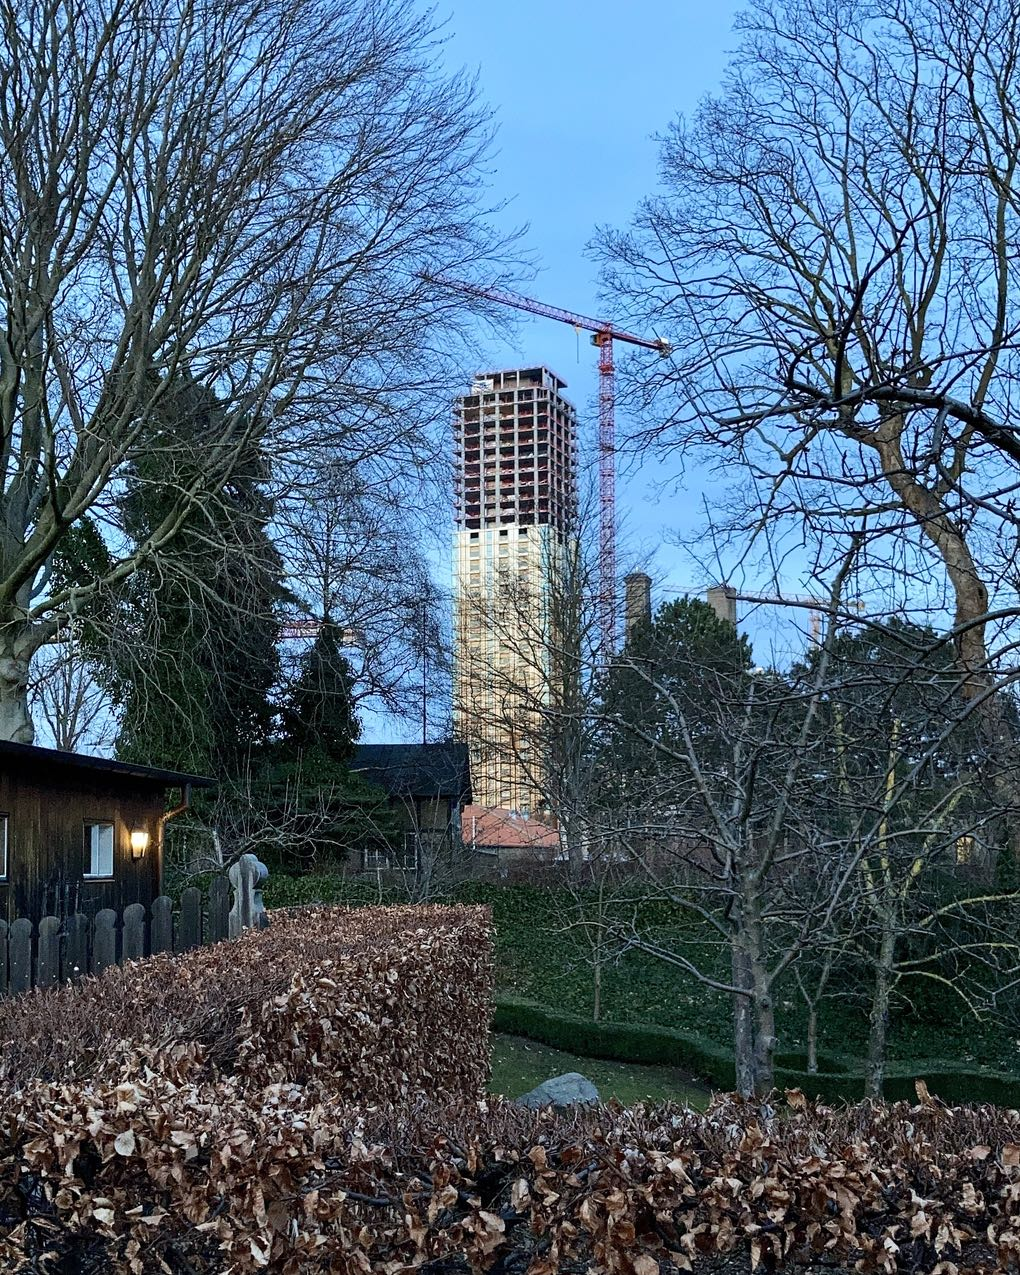 Another Carlsberg tower. Half-clad. Iron-clad. Framed by a bronchial network of tree branches, bare against the evening sky. The dried out leaves of a hedge in the front. A wooden house with a light on, to the left.